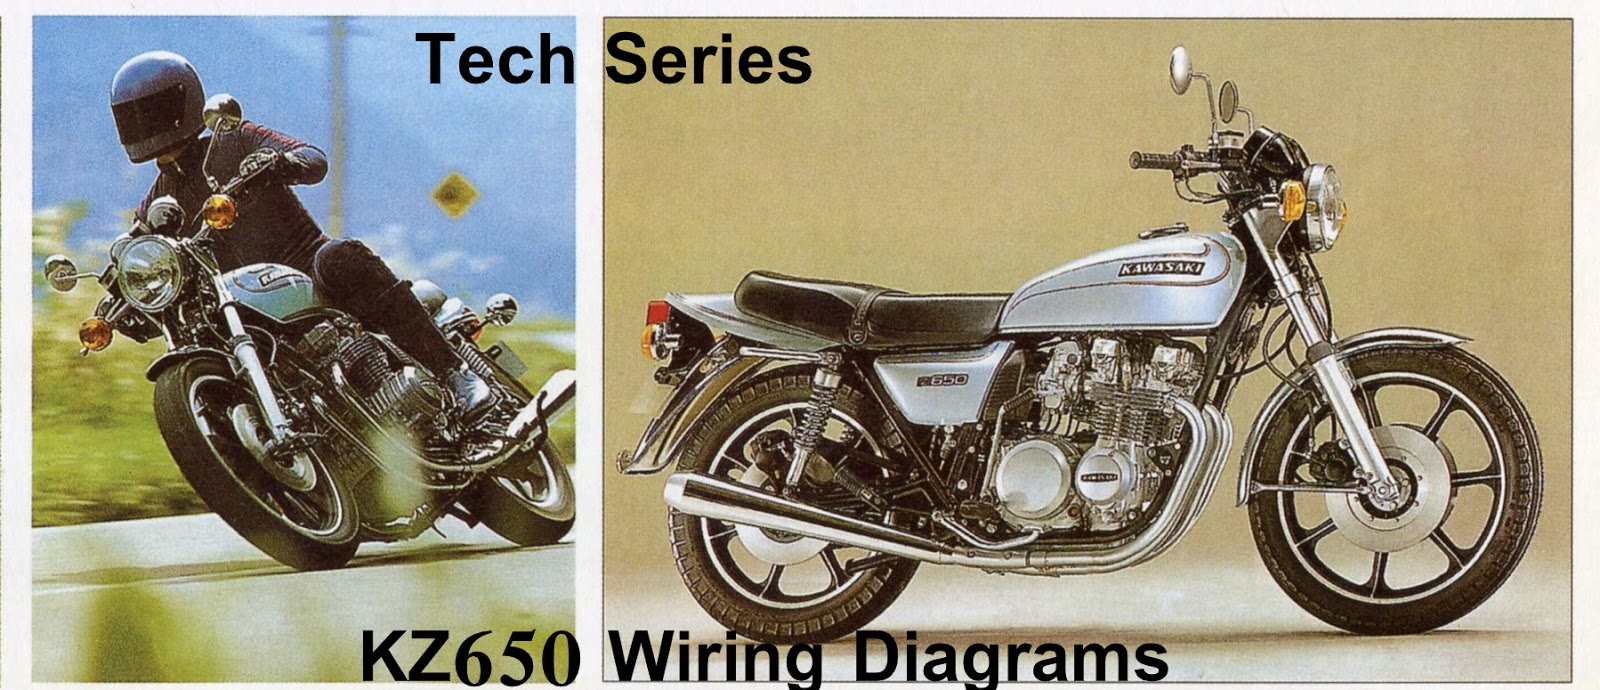 WRG-6786] Kawasaki Kz650 Wiring Diagram on